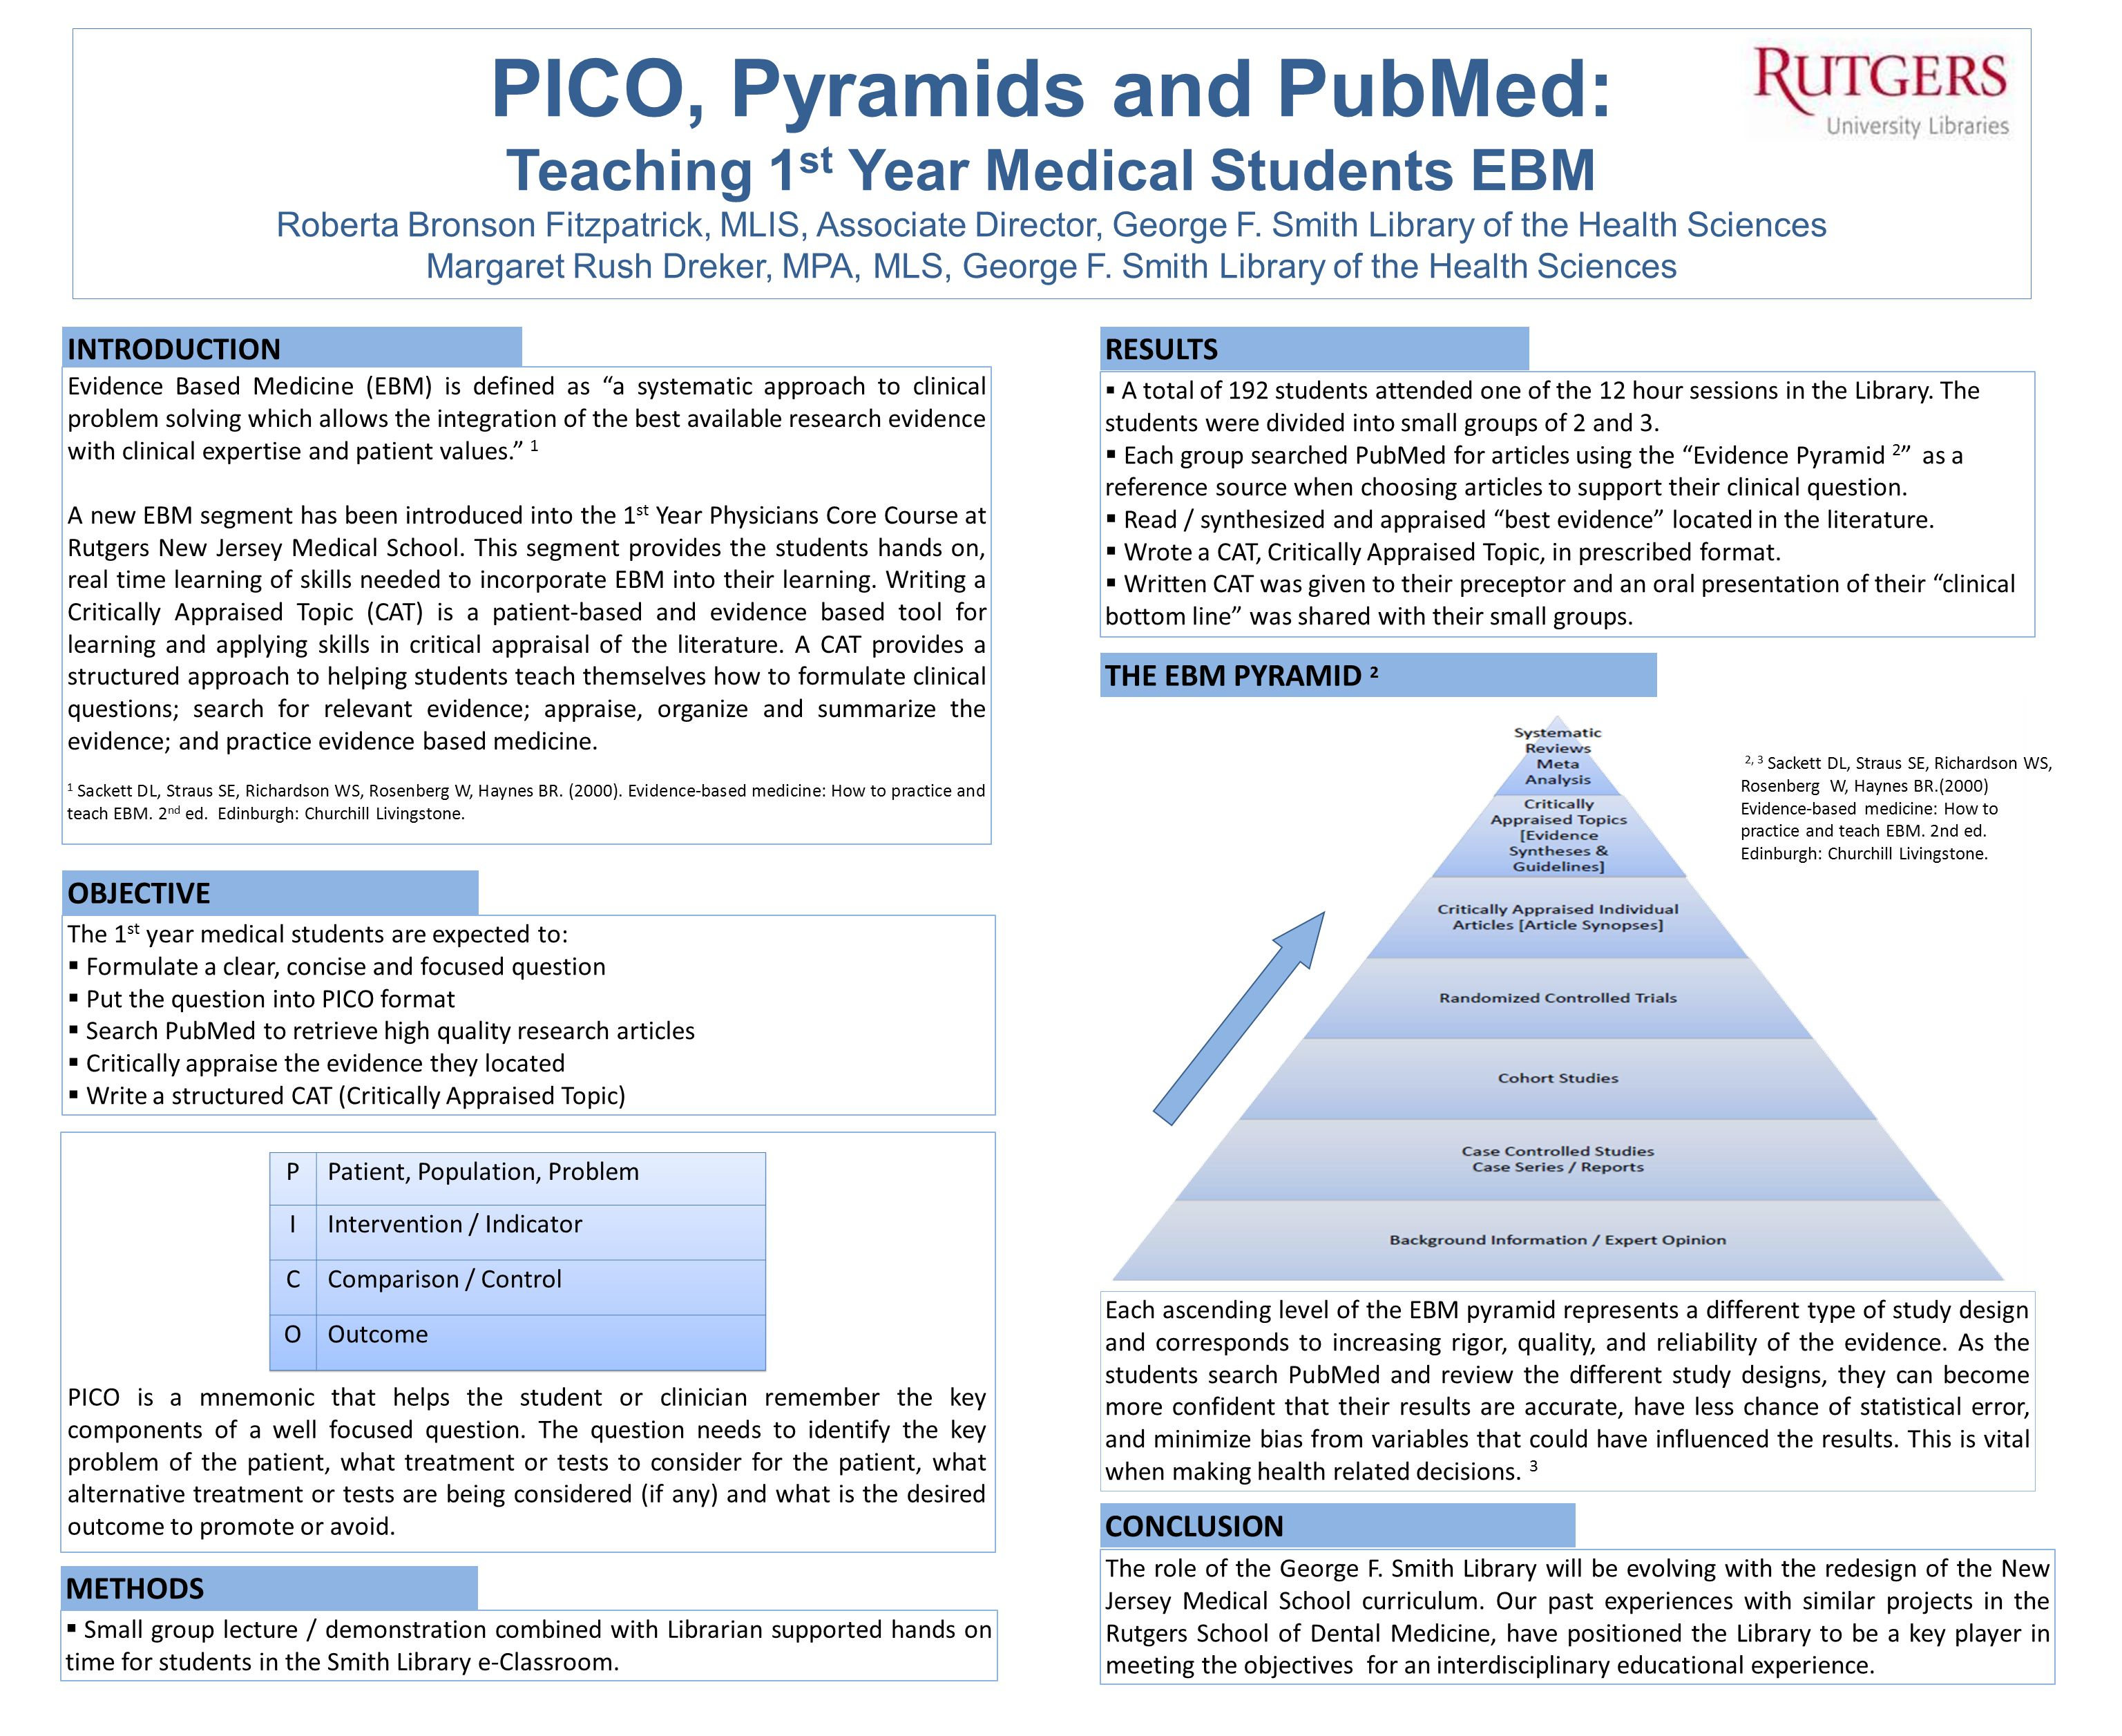 PICO, Pyramids and PubMed: Teaching 1st Year Medical Students EBM